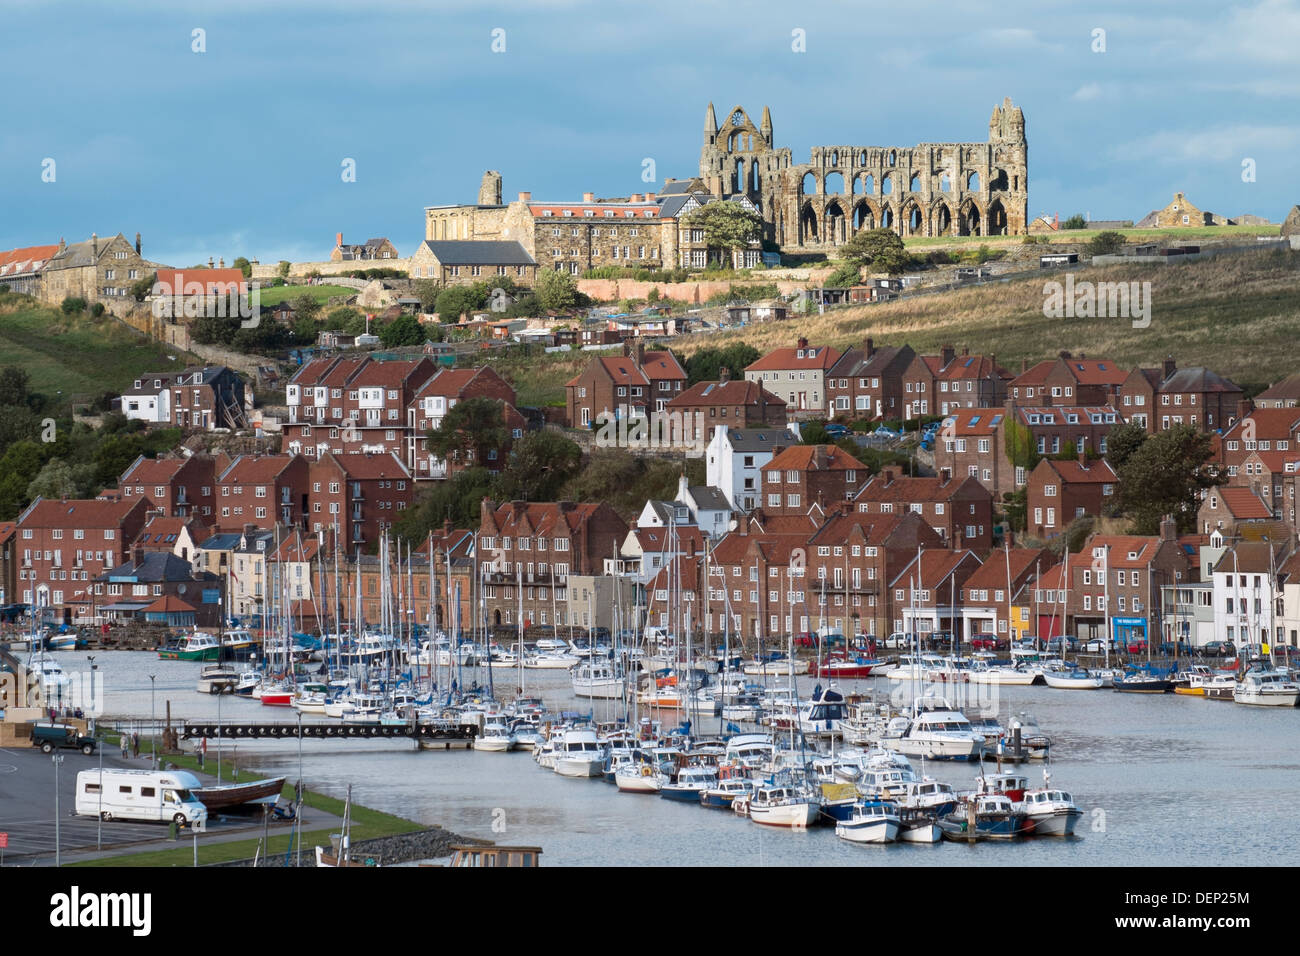 View of Whitby harbour showing the Church and Abbey. River Esk - Stock Image